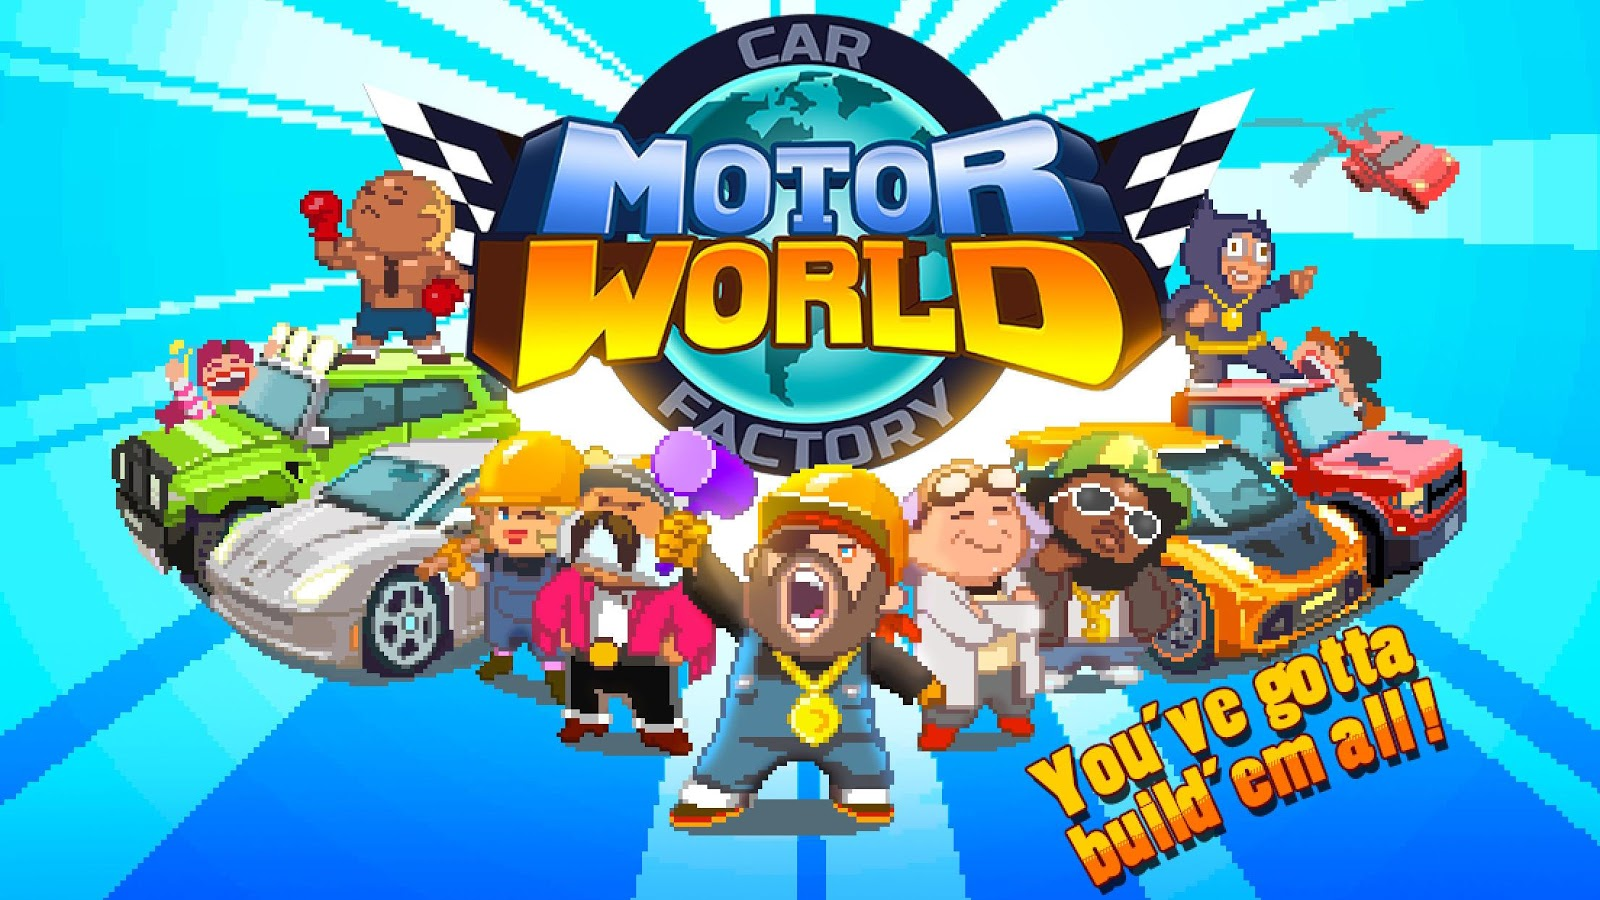 Motor World Car Factory Screenshot